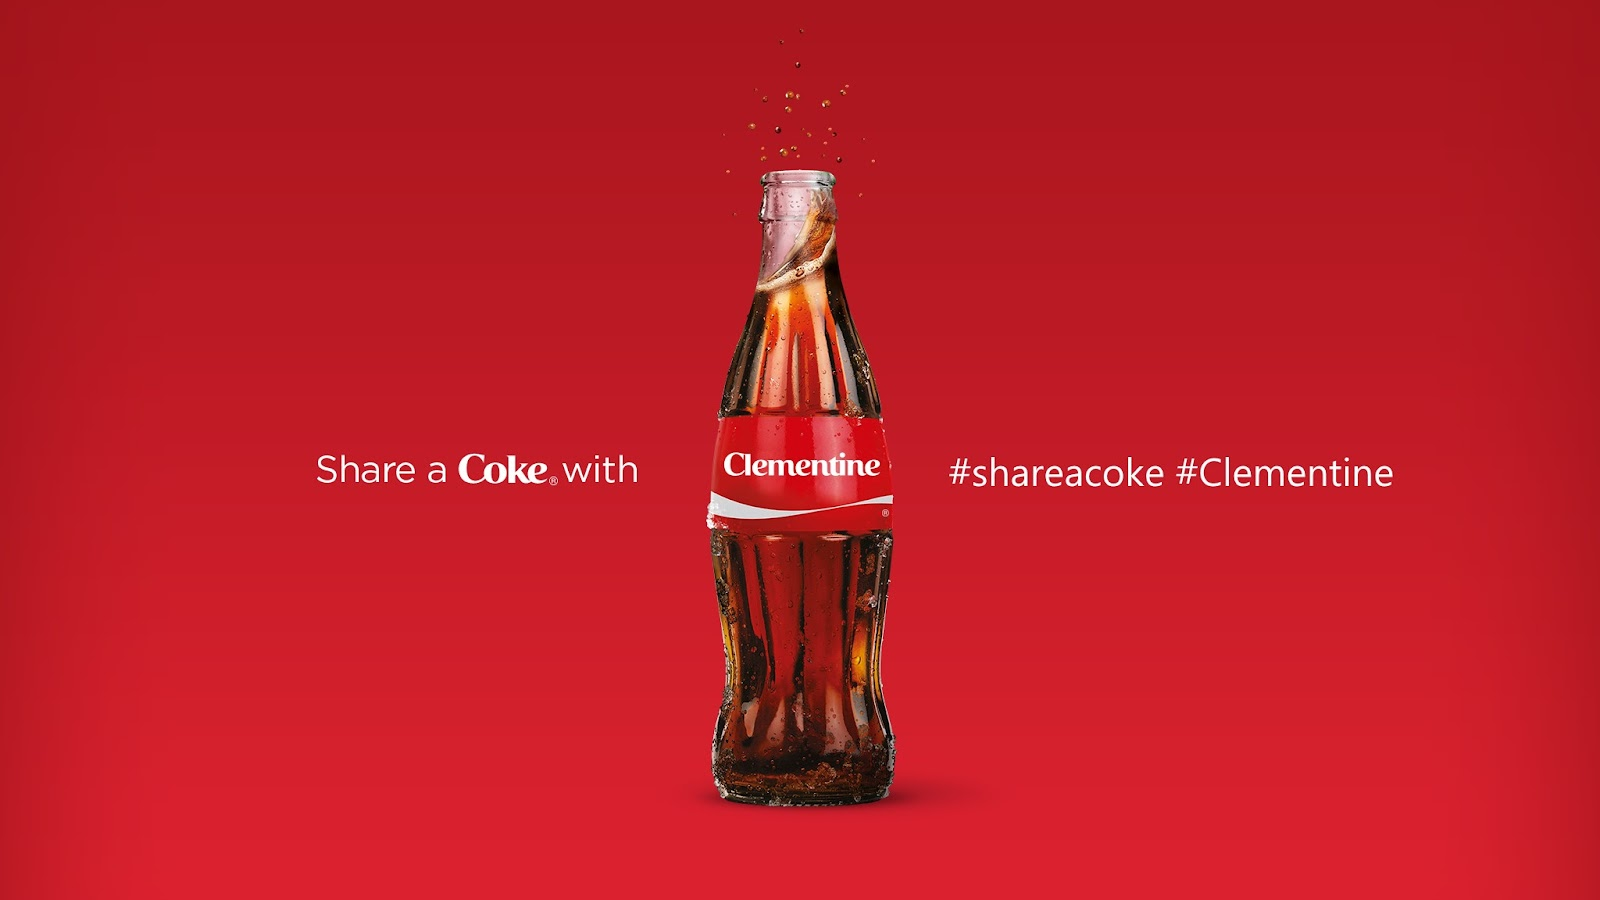 Coca Colas Share a Coke campaign to engage its customers